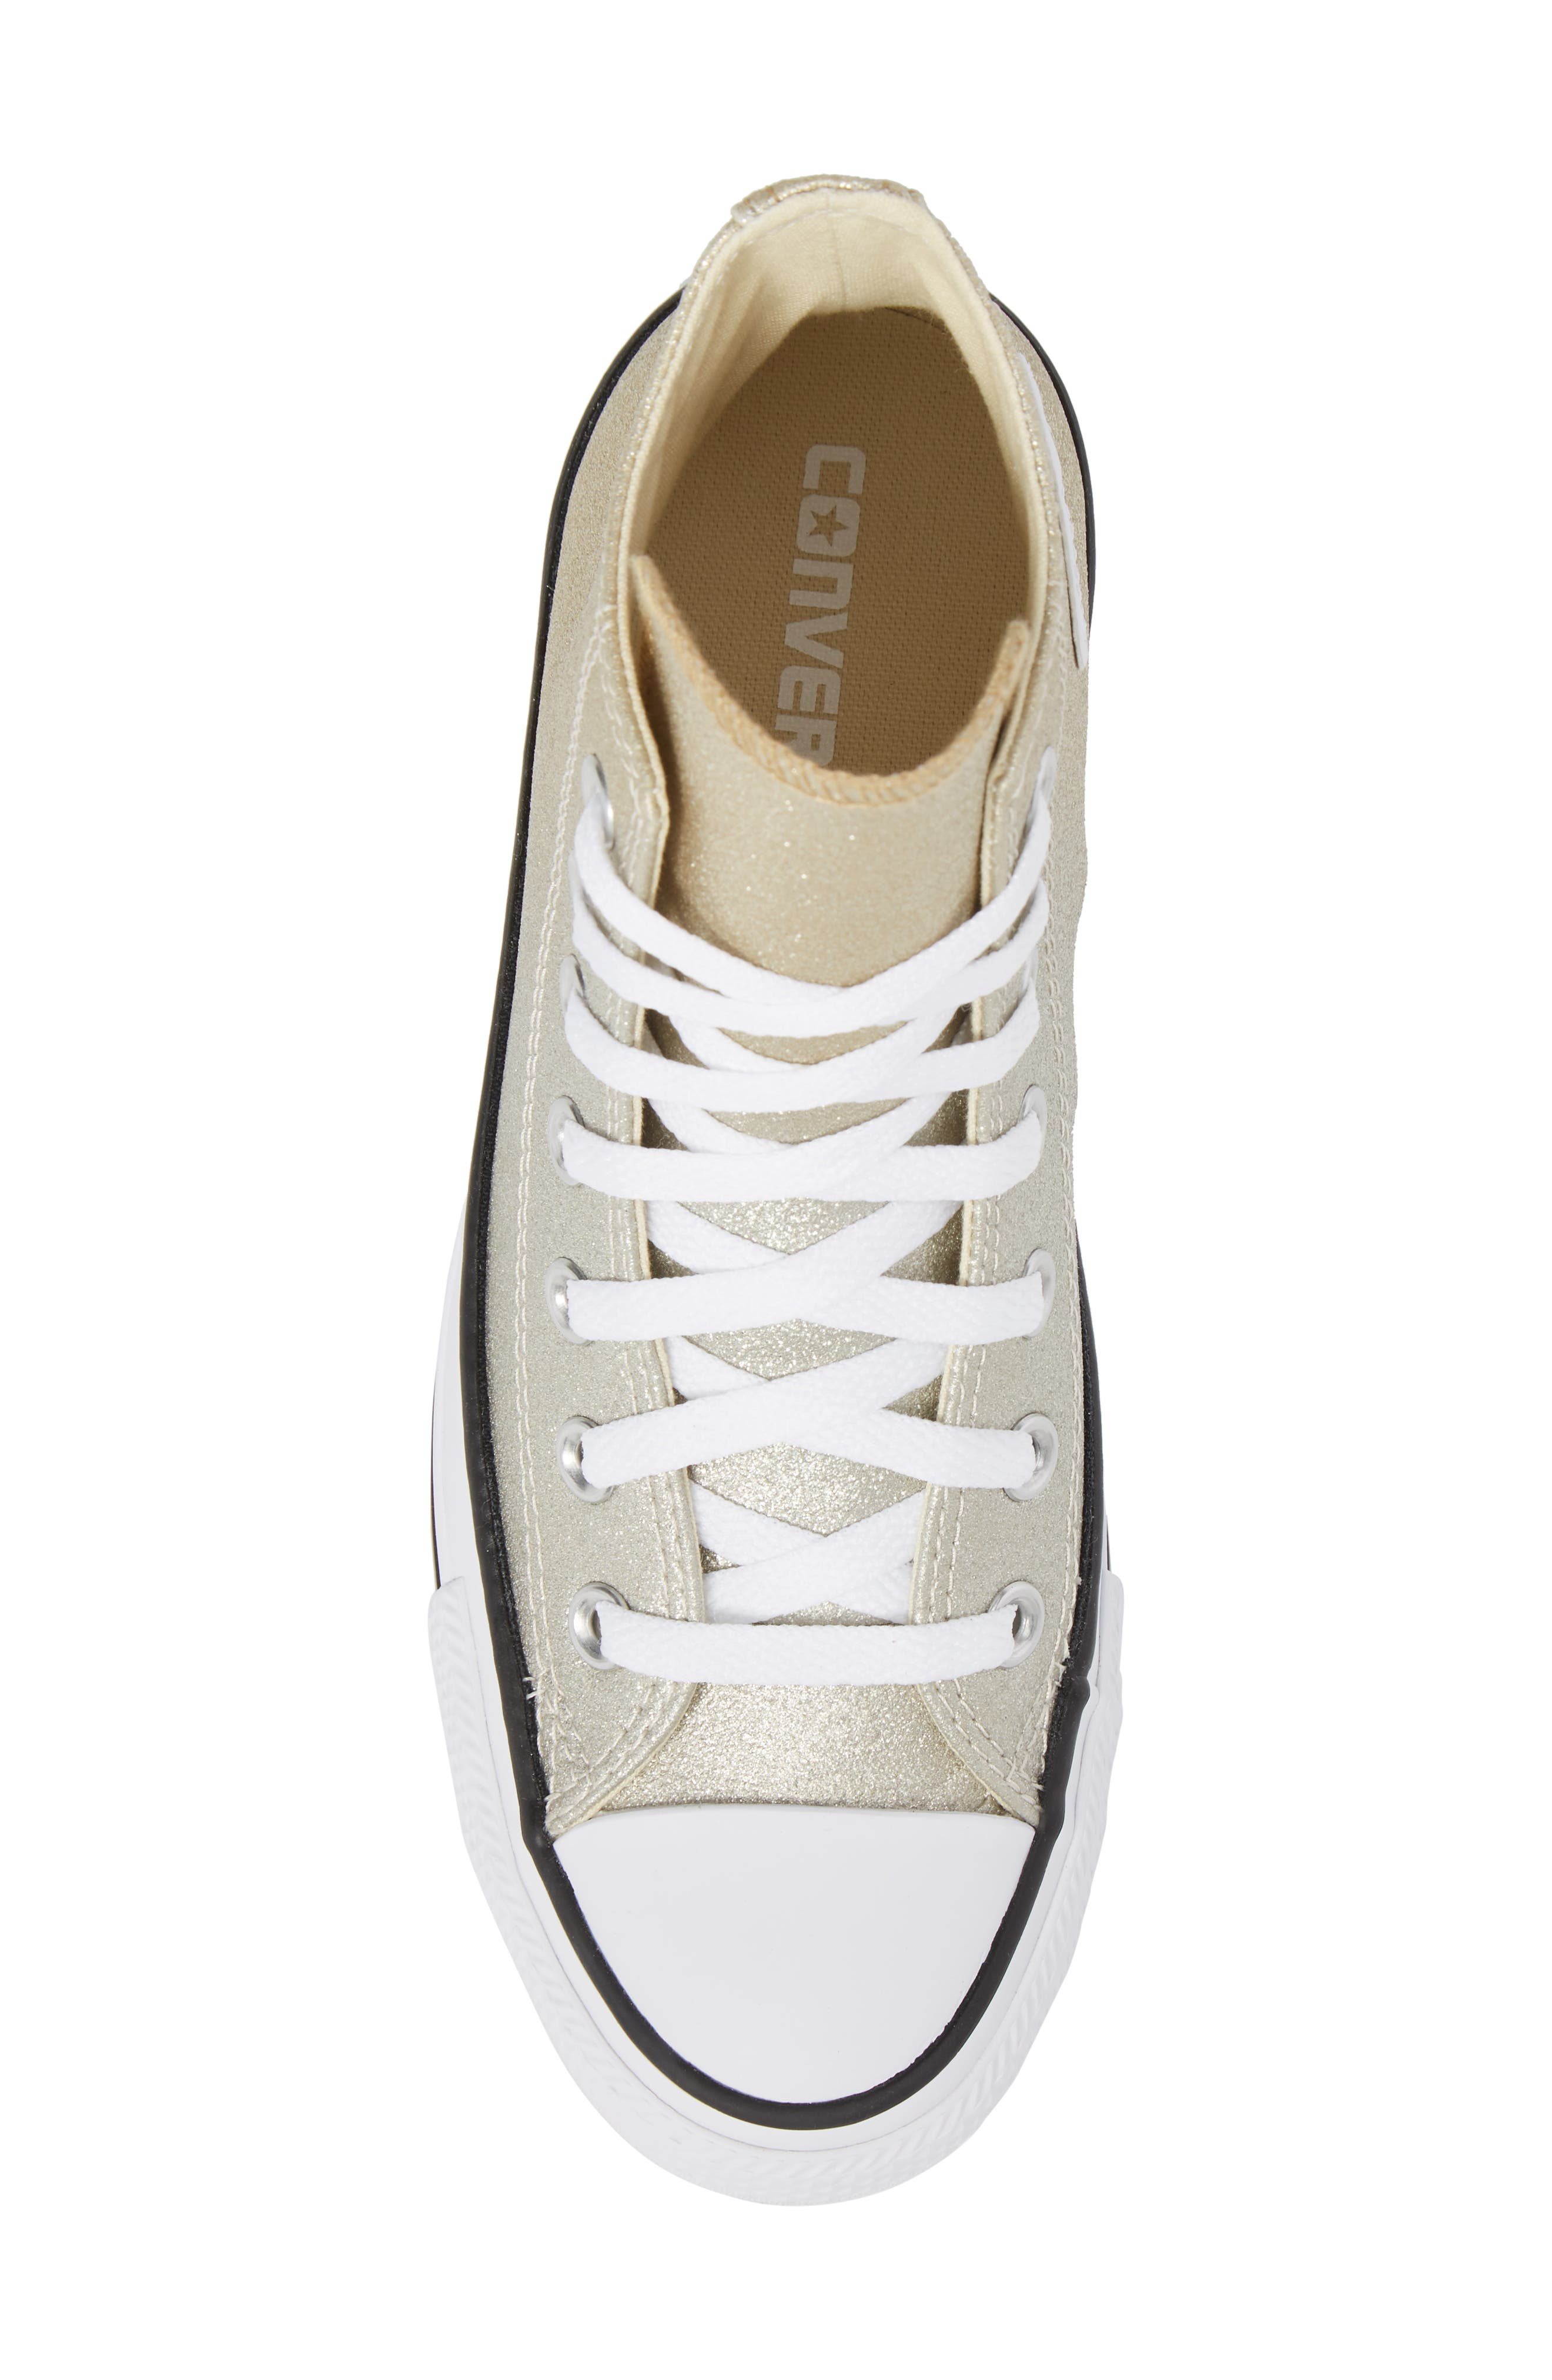 Chuck Taylor<sup>®</sup> All Star<sup>®</sup> Ombré Metallic High Top Sneaker,                             Alternate thumbnail 5, color,                             Light Gold